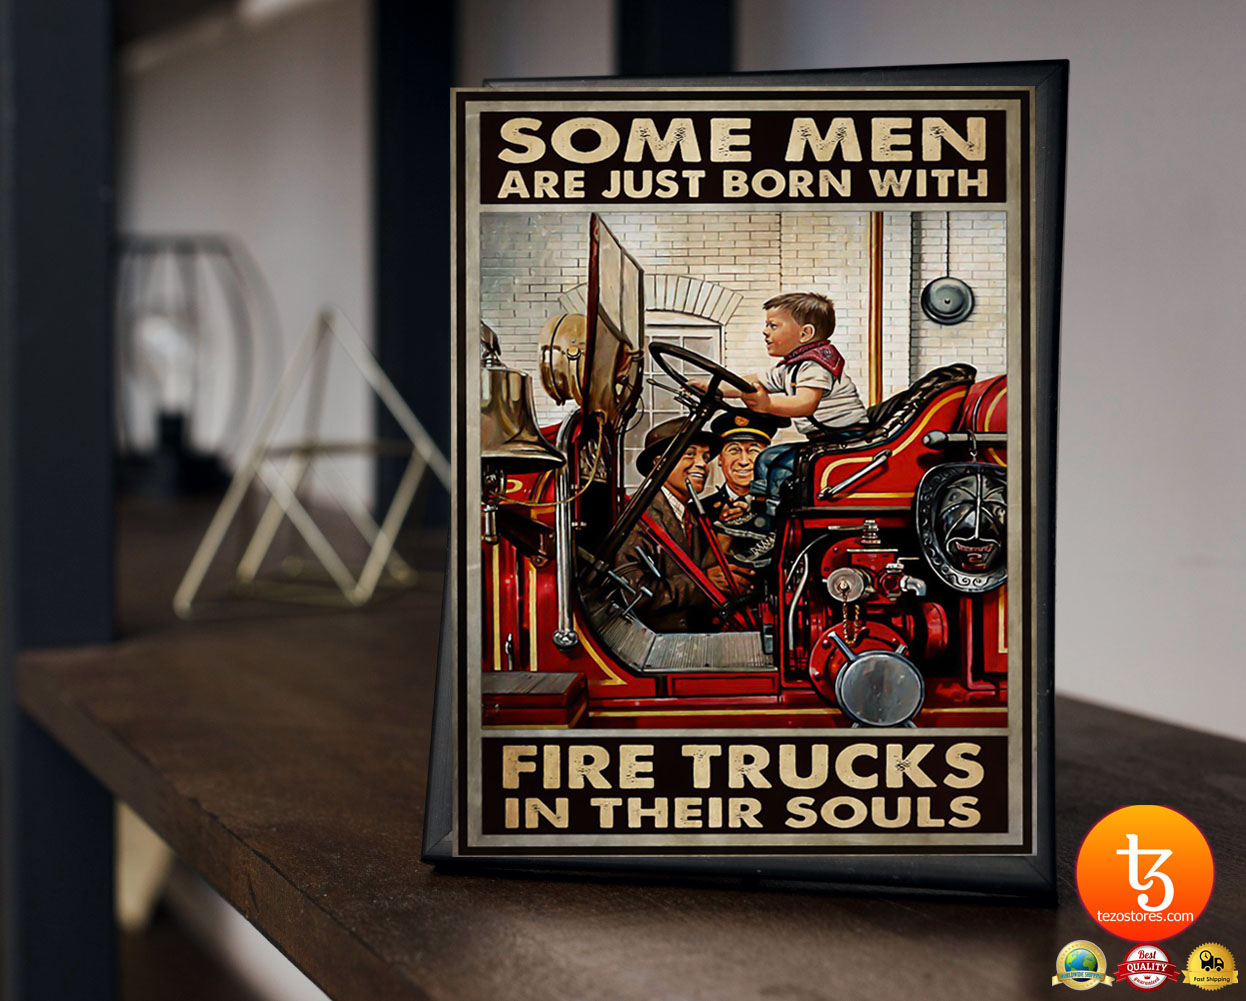 Some men are just born with fire trucks in their souls poster 2